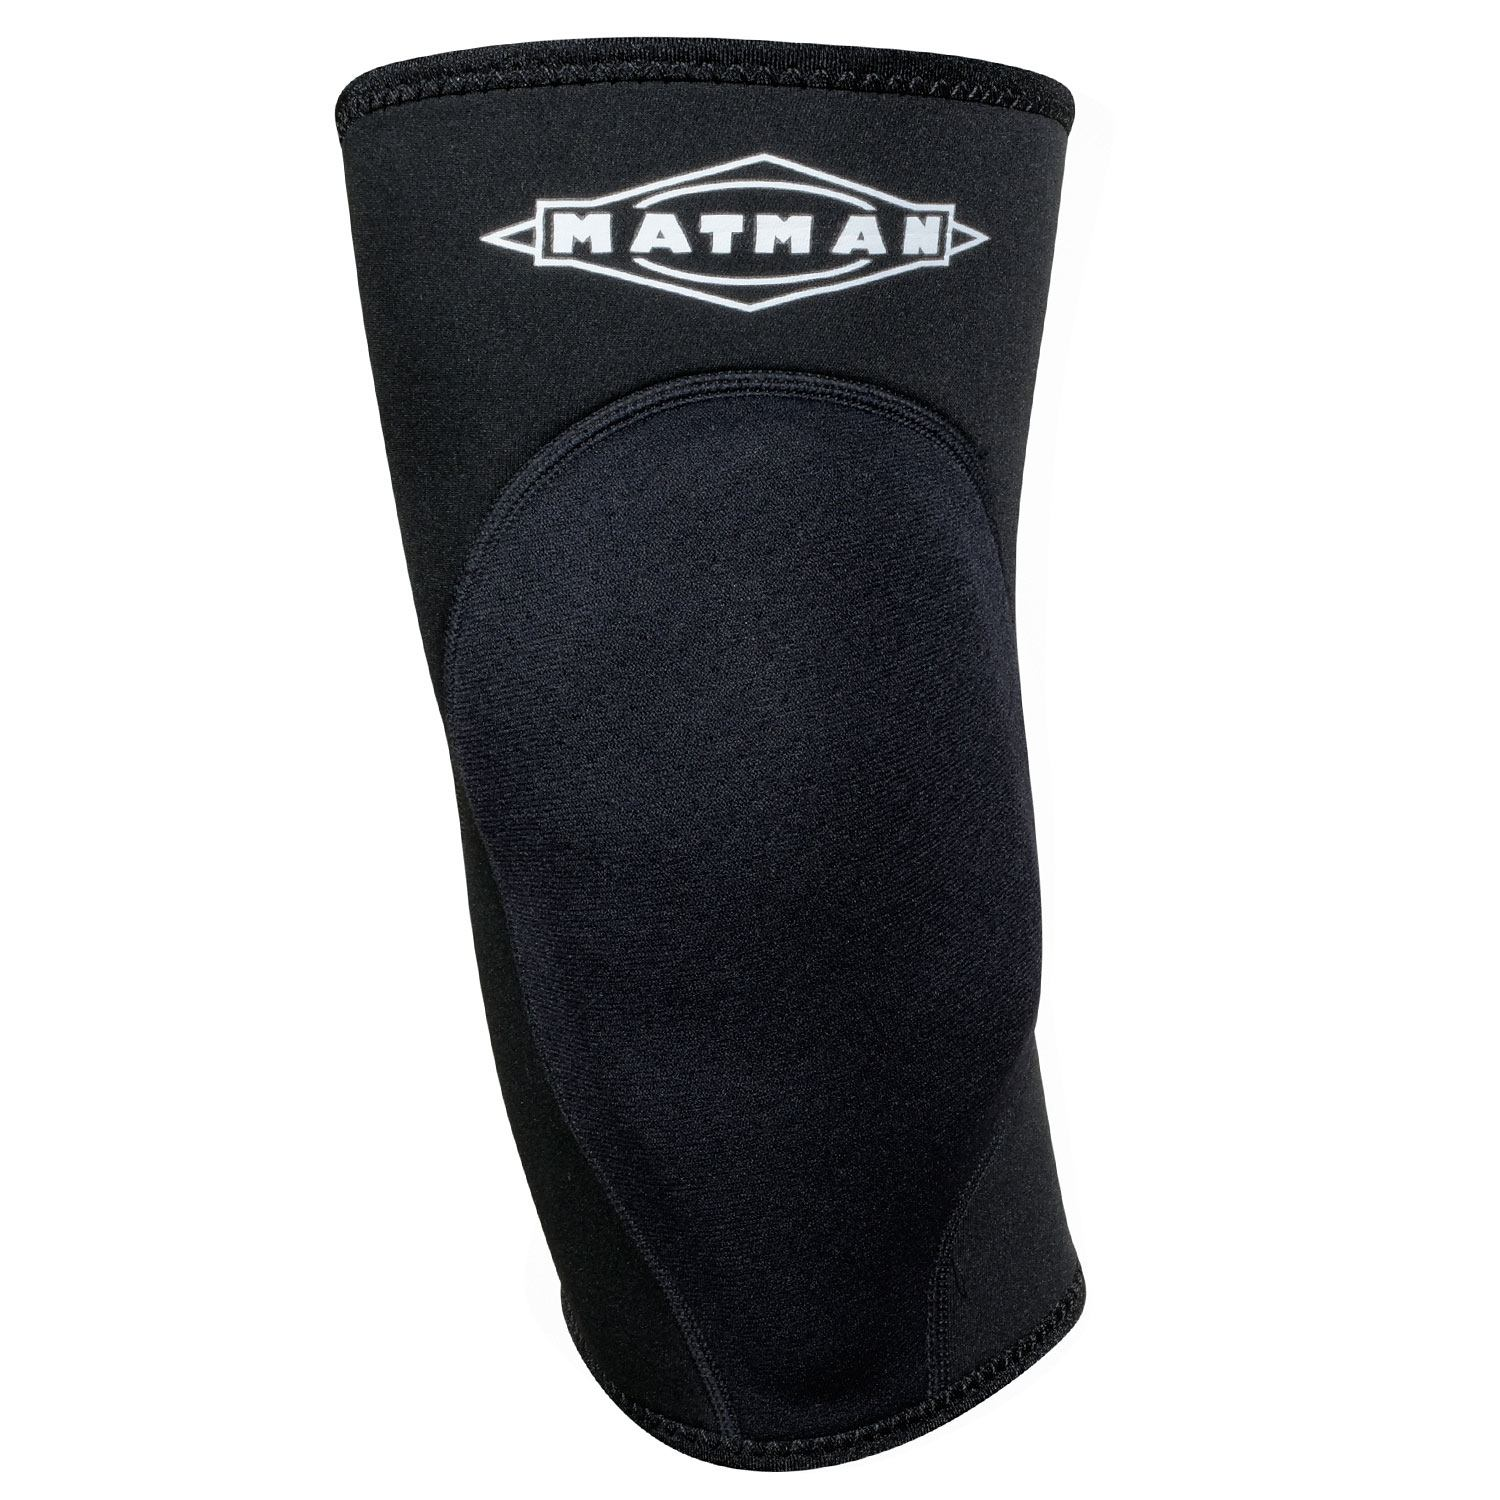 Matman Neoprene Air Wrestling Kneepad Kneepads